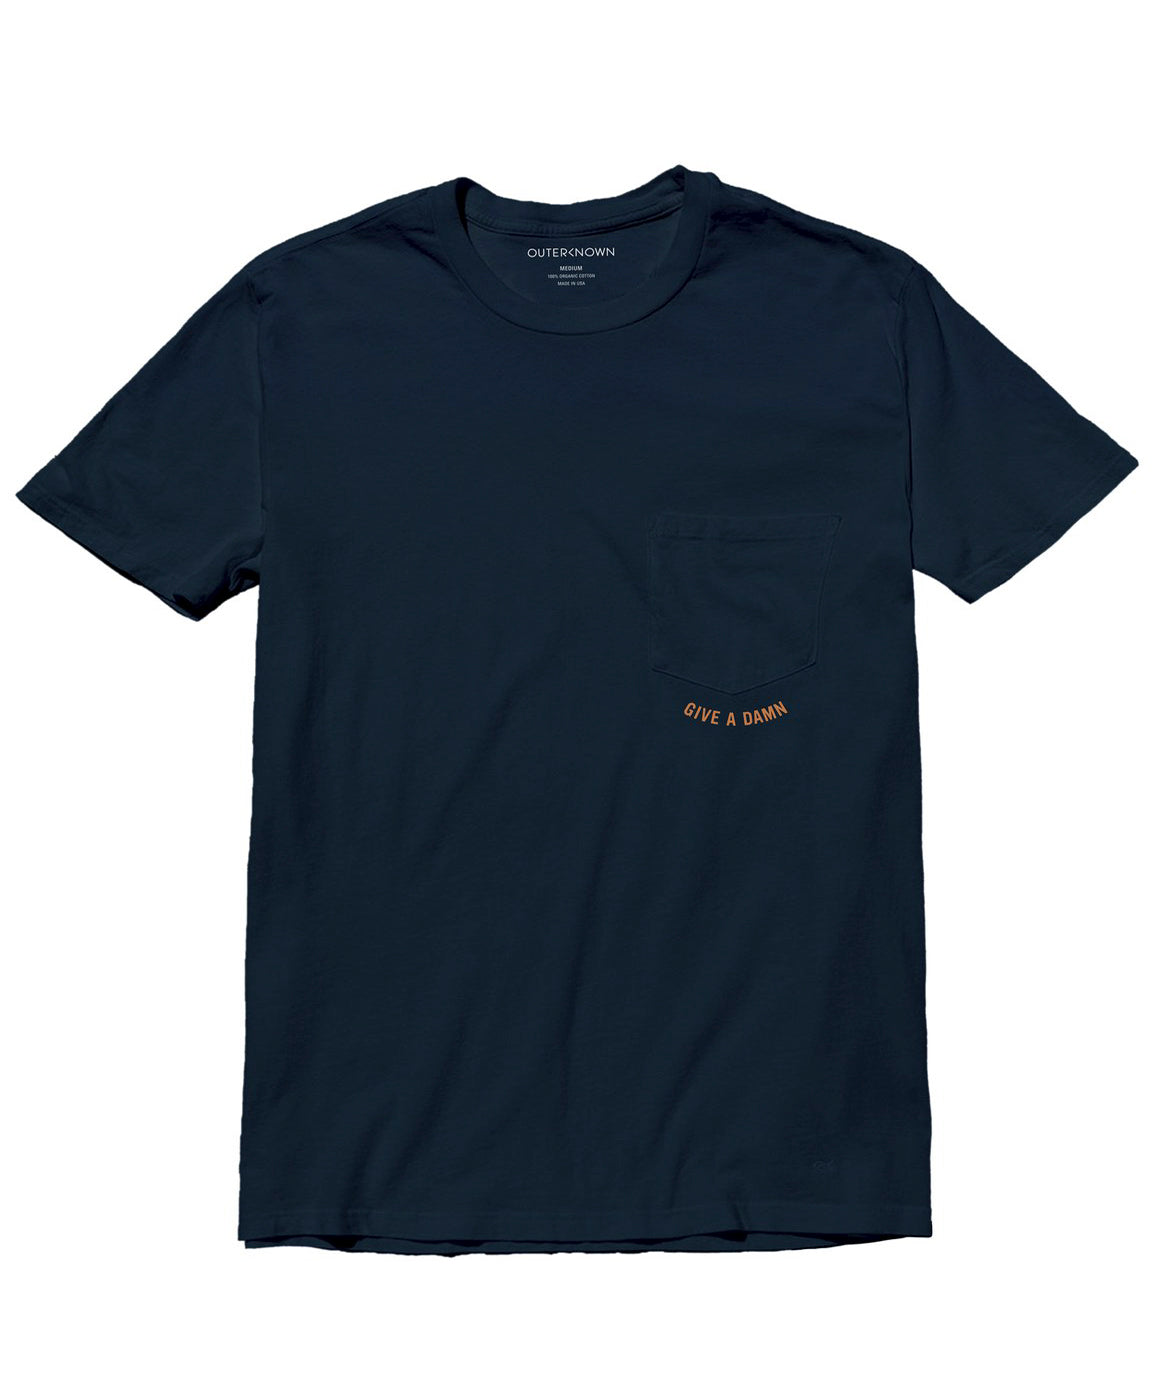 6c43af118a13 Give A Damn Pocket Tee | Men's Graphic Tees | Outerknown